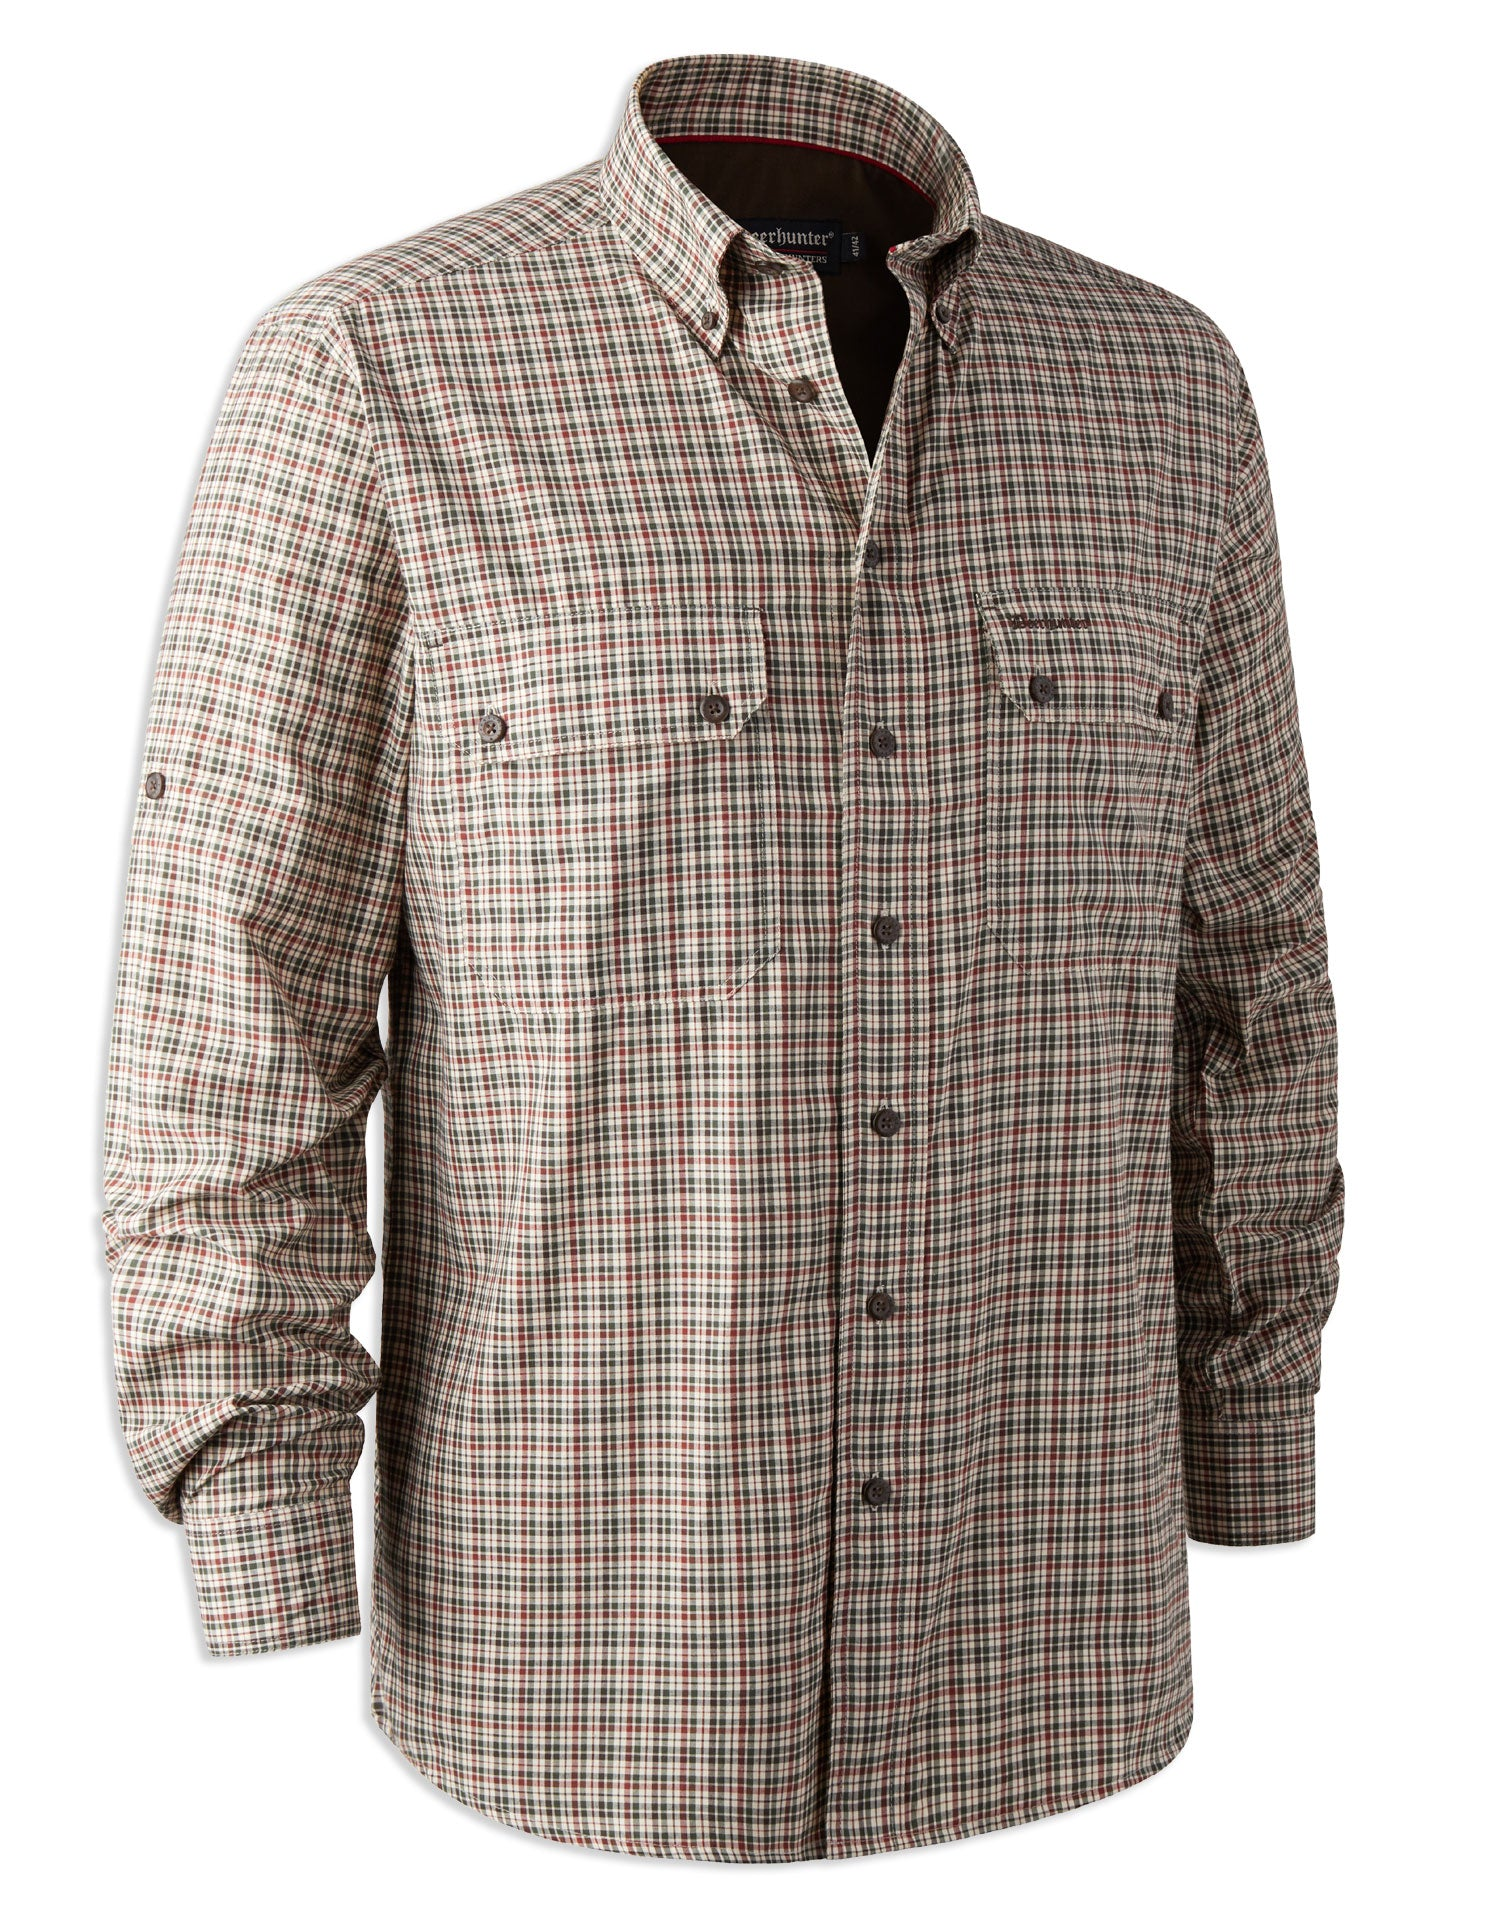 Deerhunter Ridley Bamboo Check Shirt with long sleeves